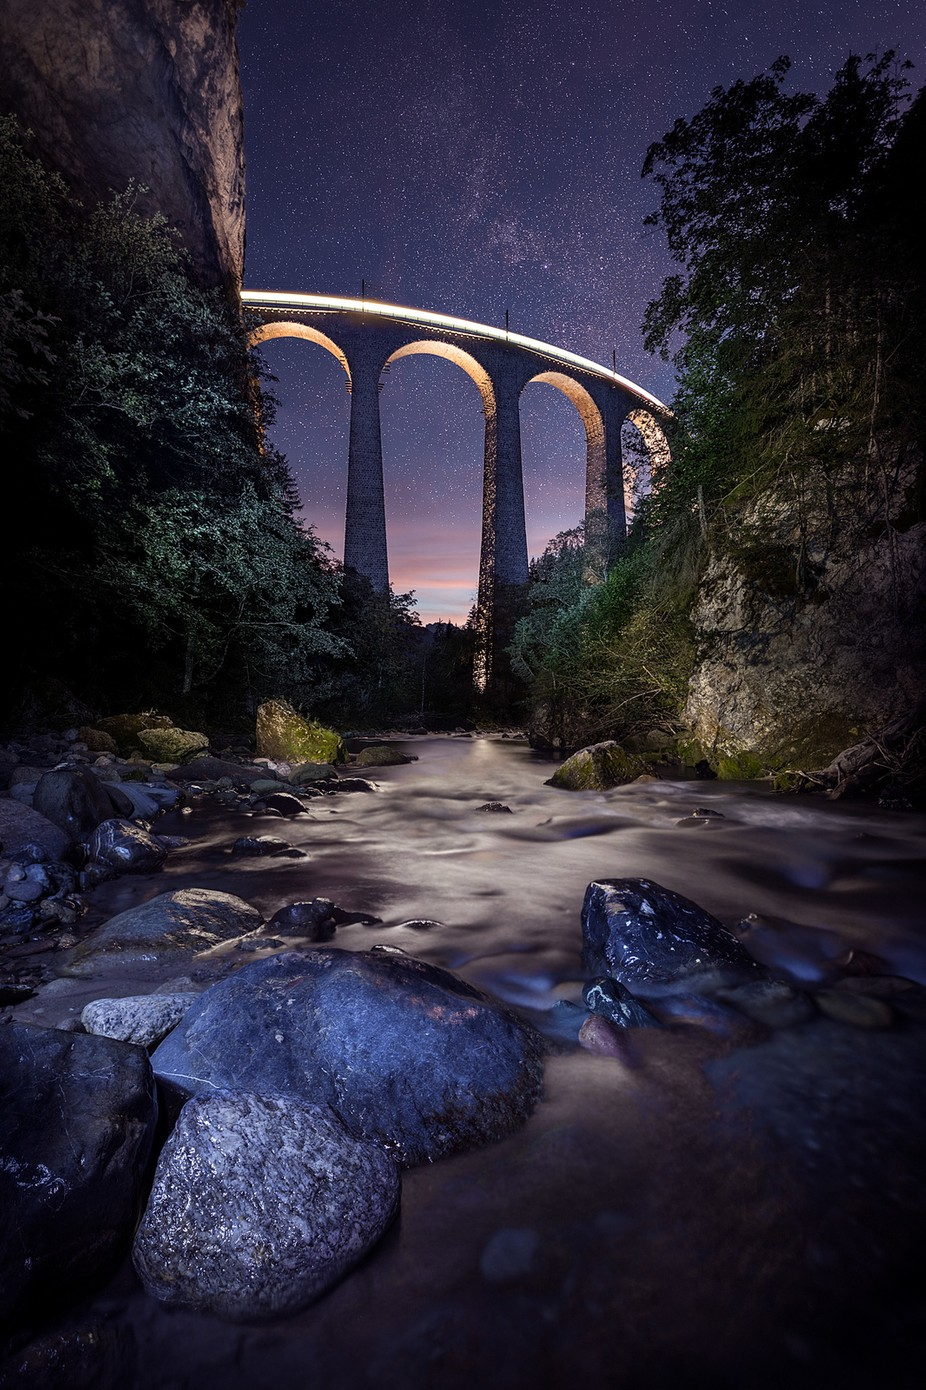 Landwasserviadukt by Axel-Jusseit - The Wonders of the World Photo Contest